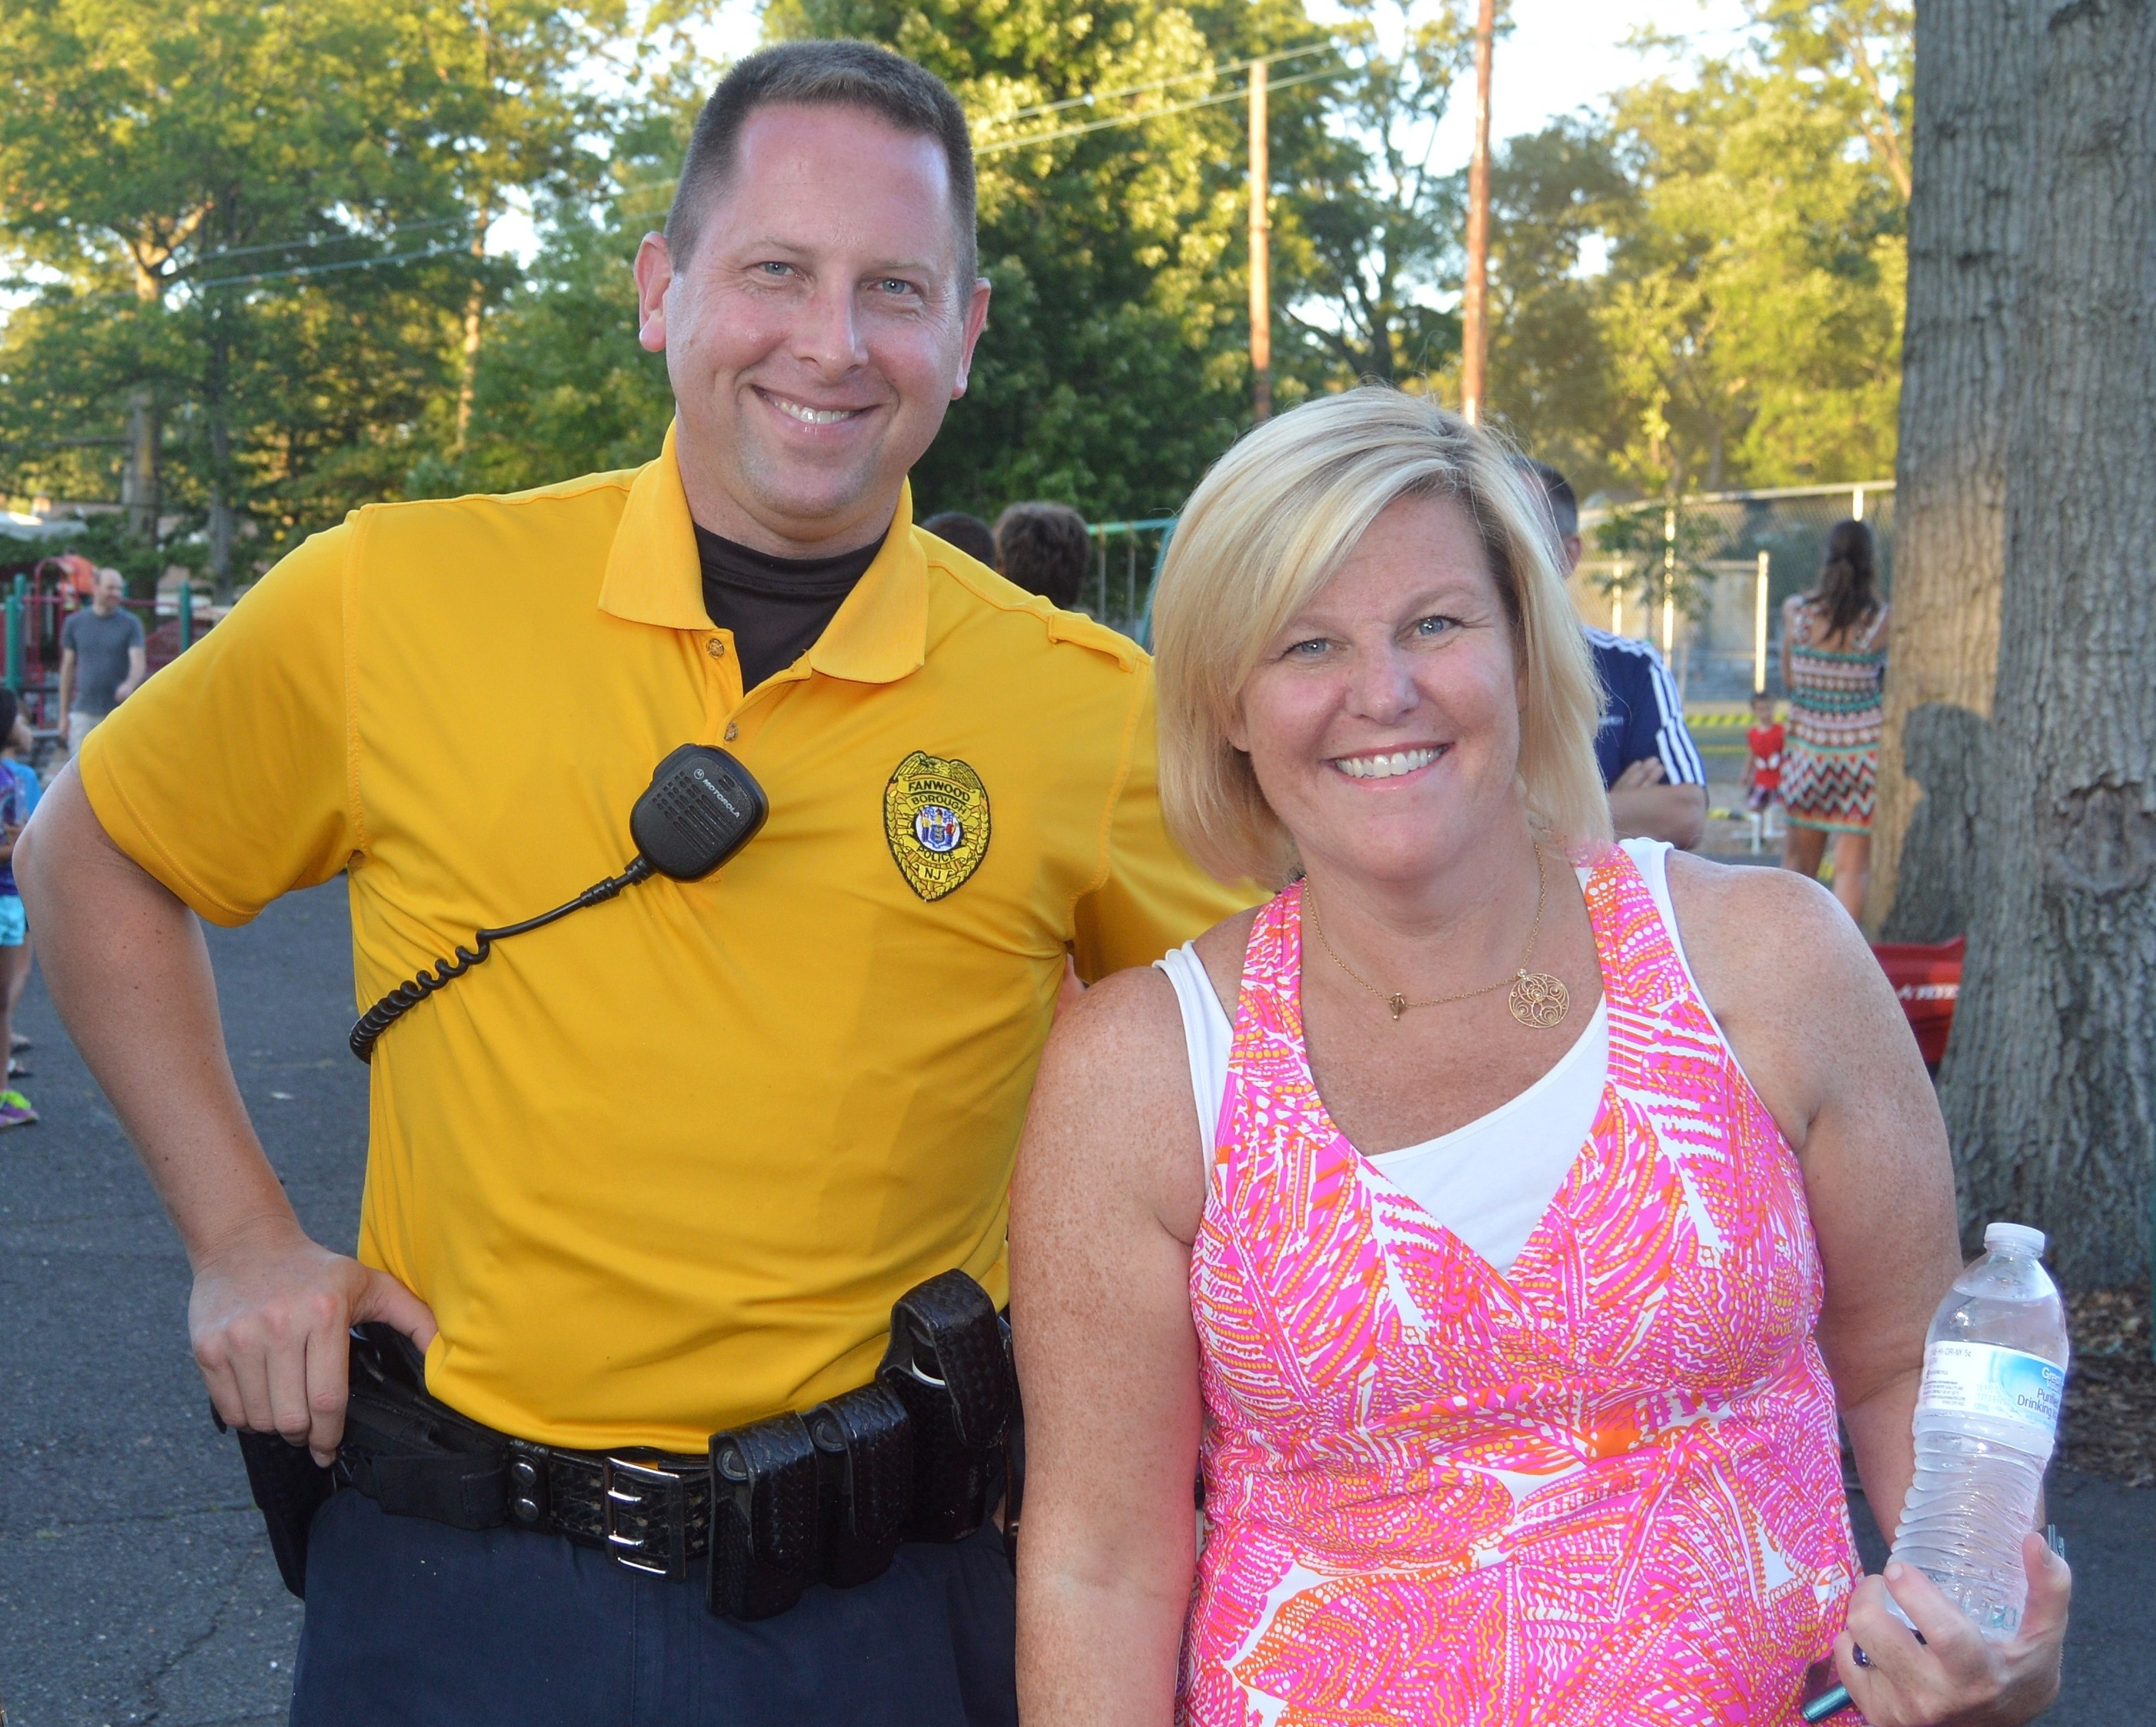 f618a4b2d2366a2710f5_Kevin_Stomber_and_Colleen_Mahr.JPG